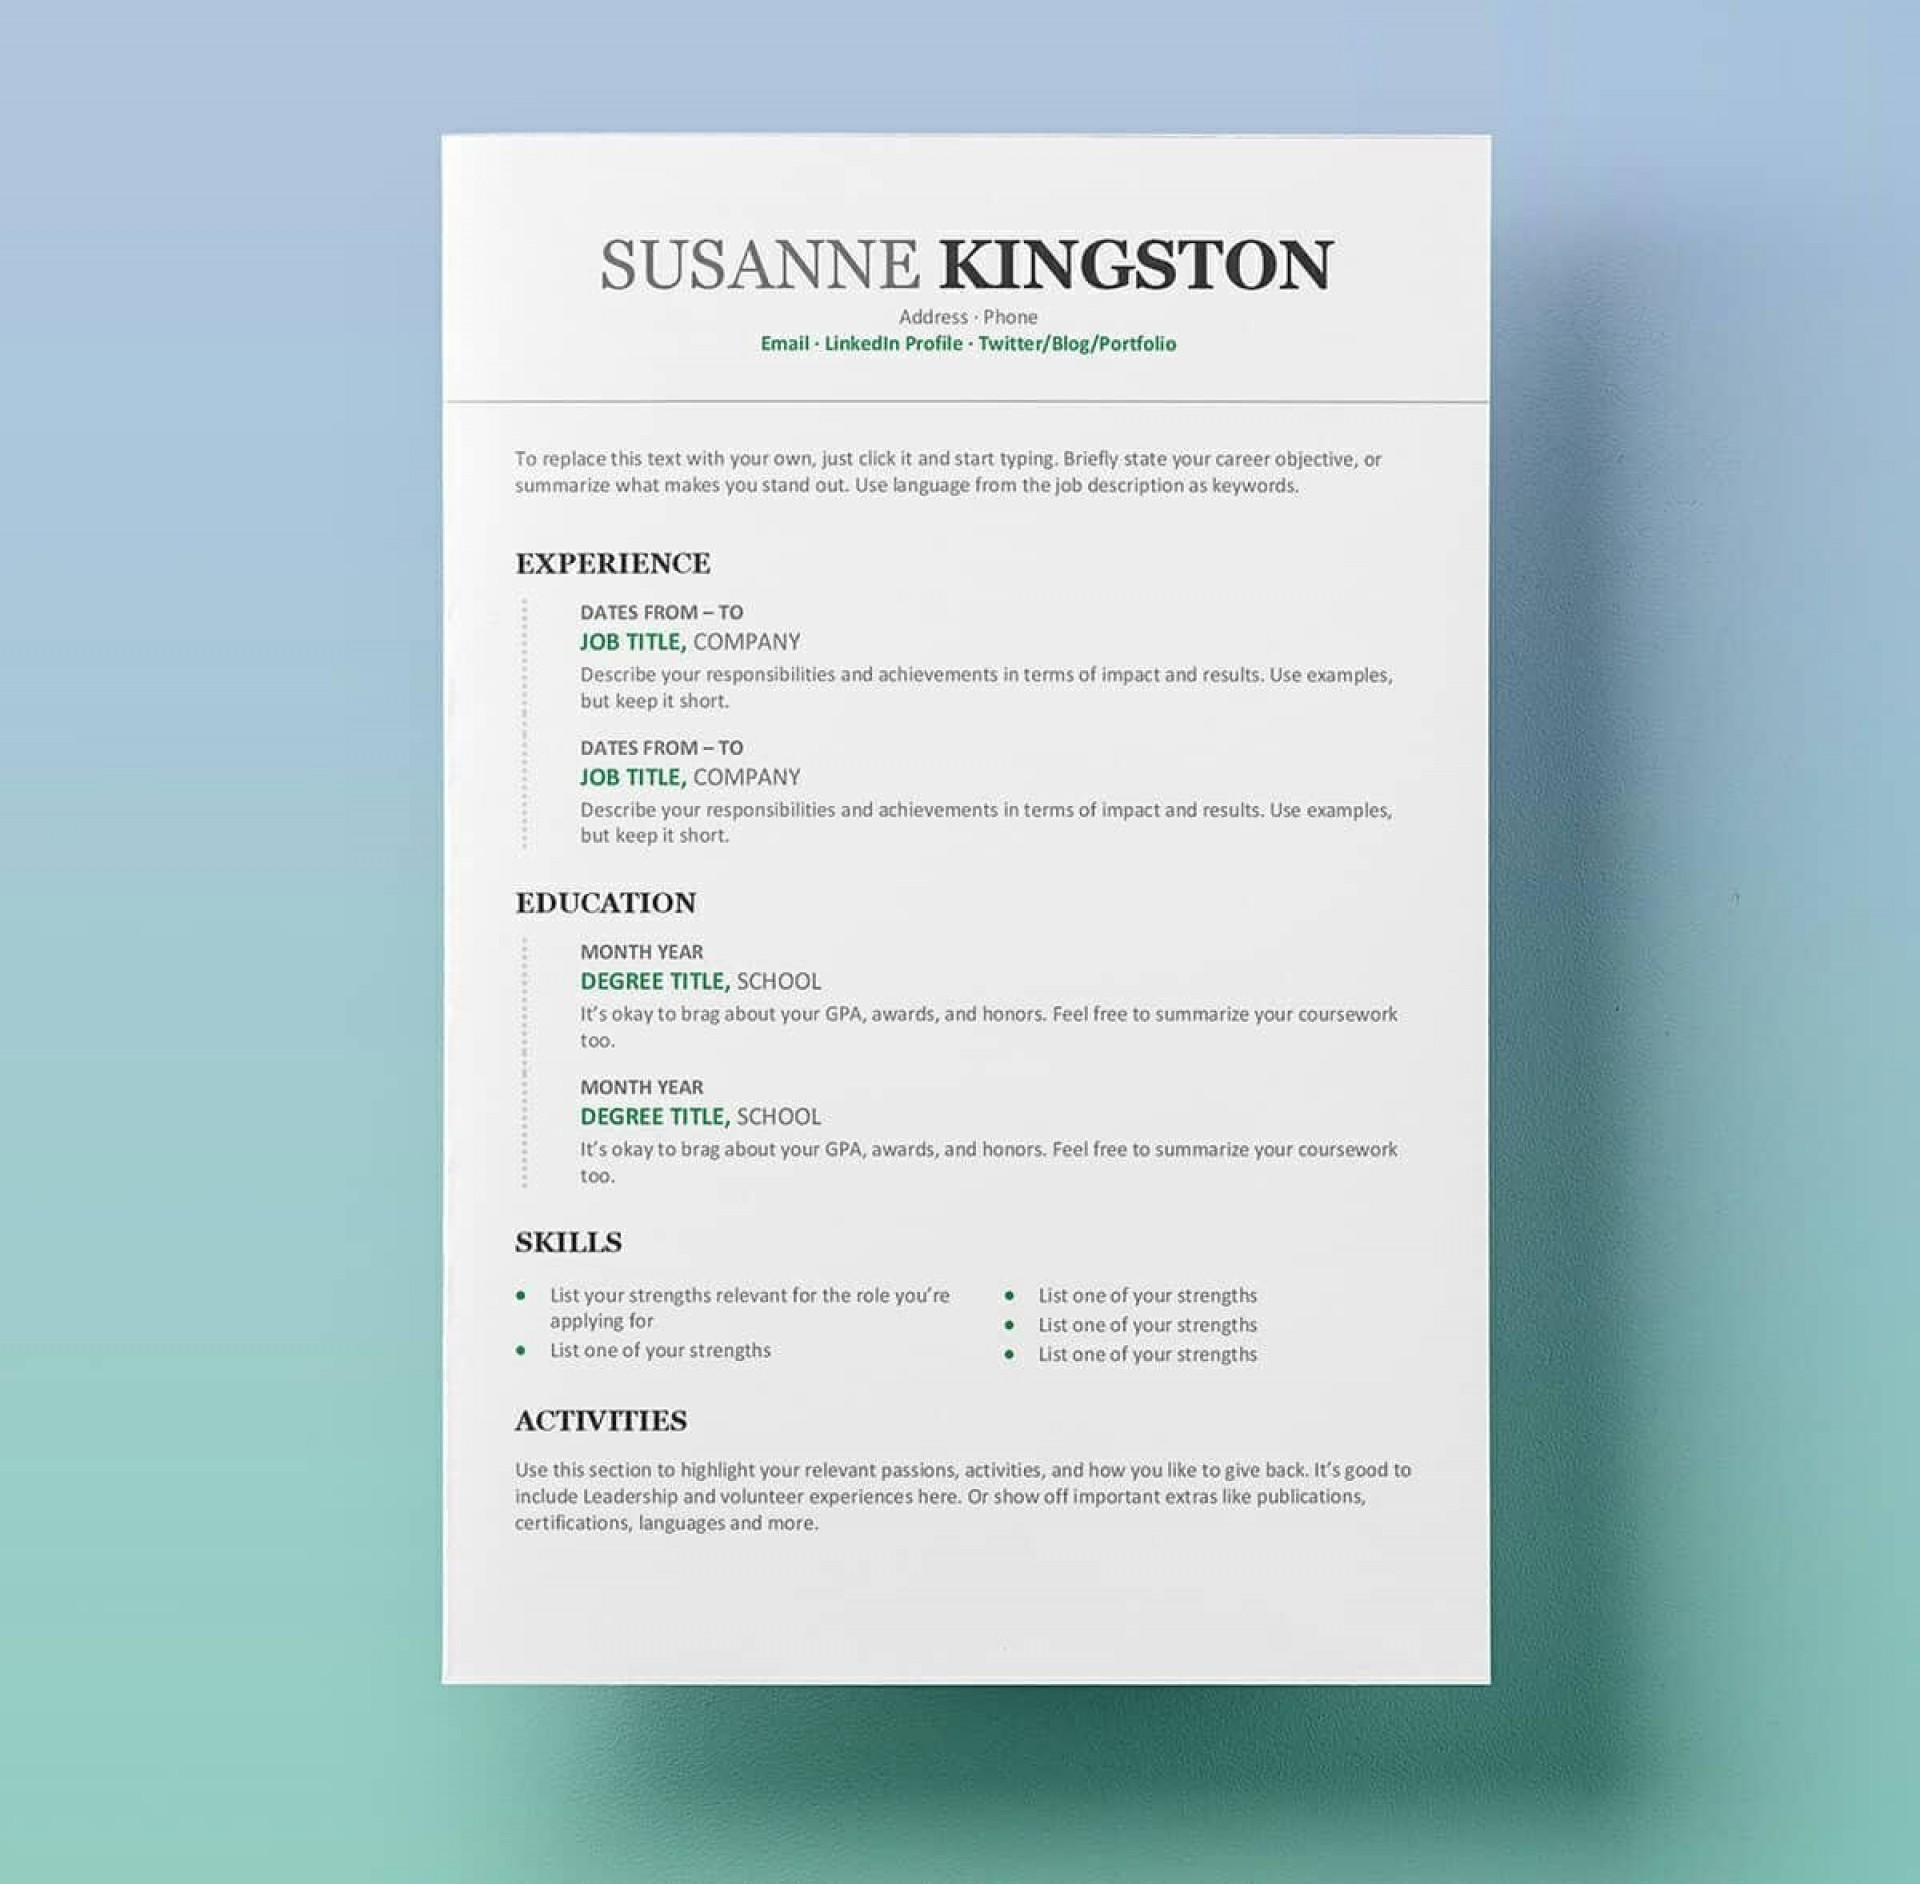 009 Exceptional Cv Template Free Download Word Doc Image  Editable Document For Fresher Student Engineer1920